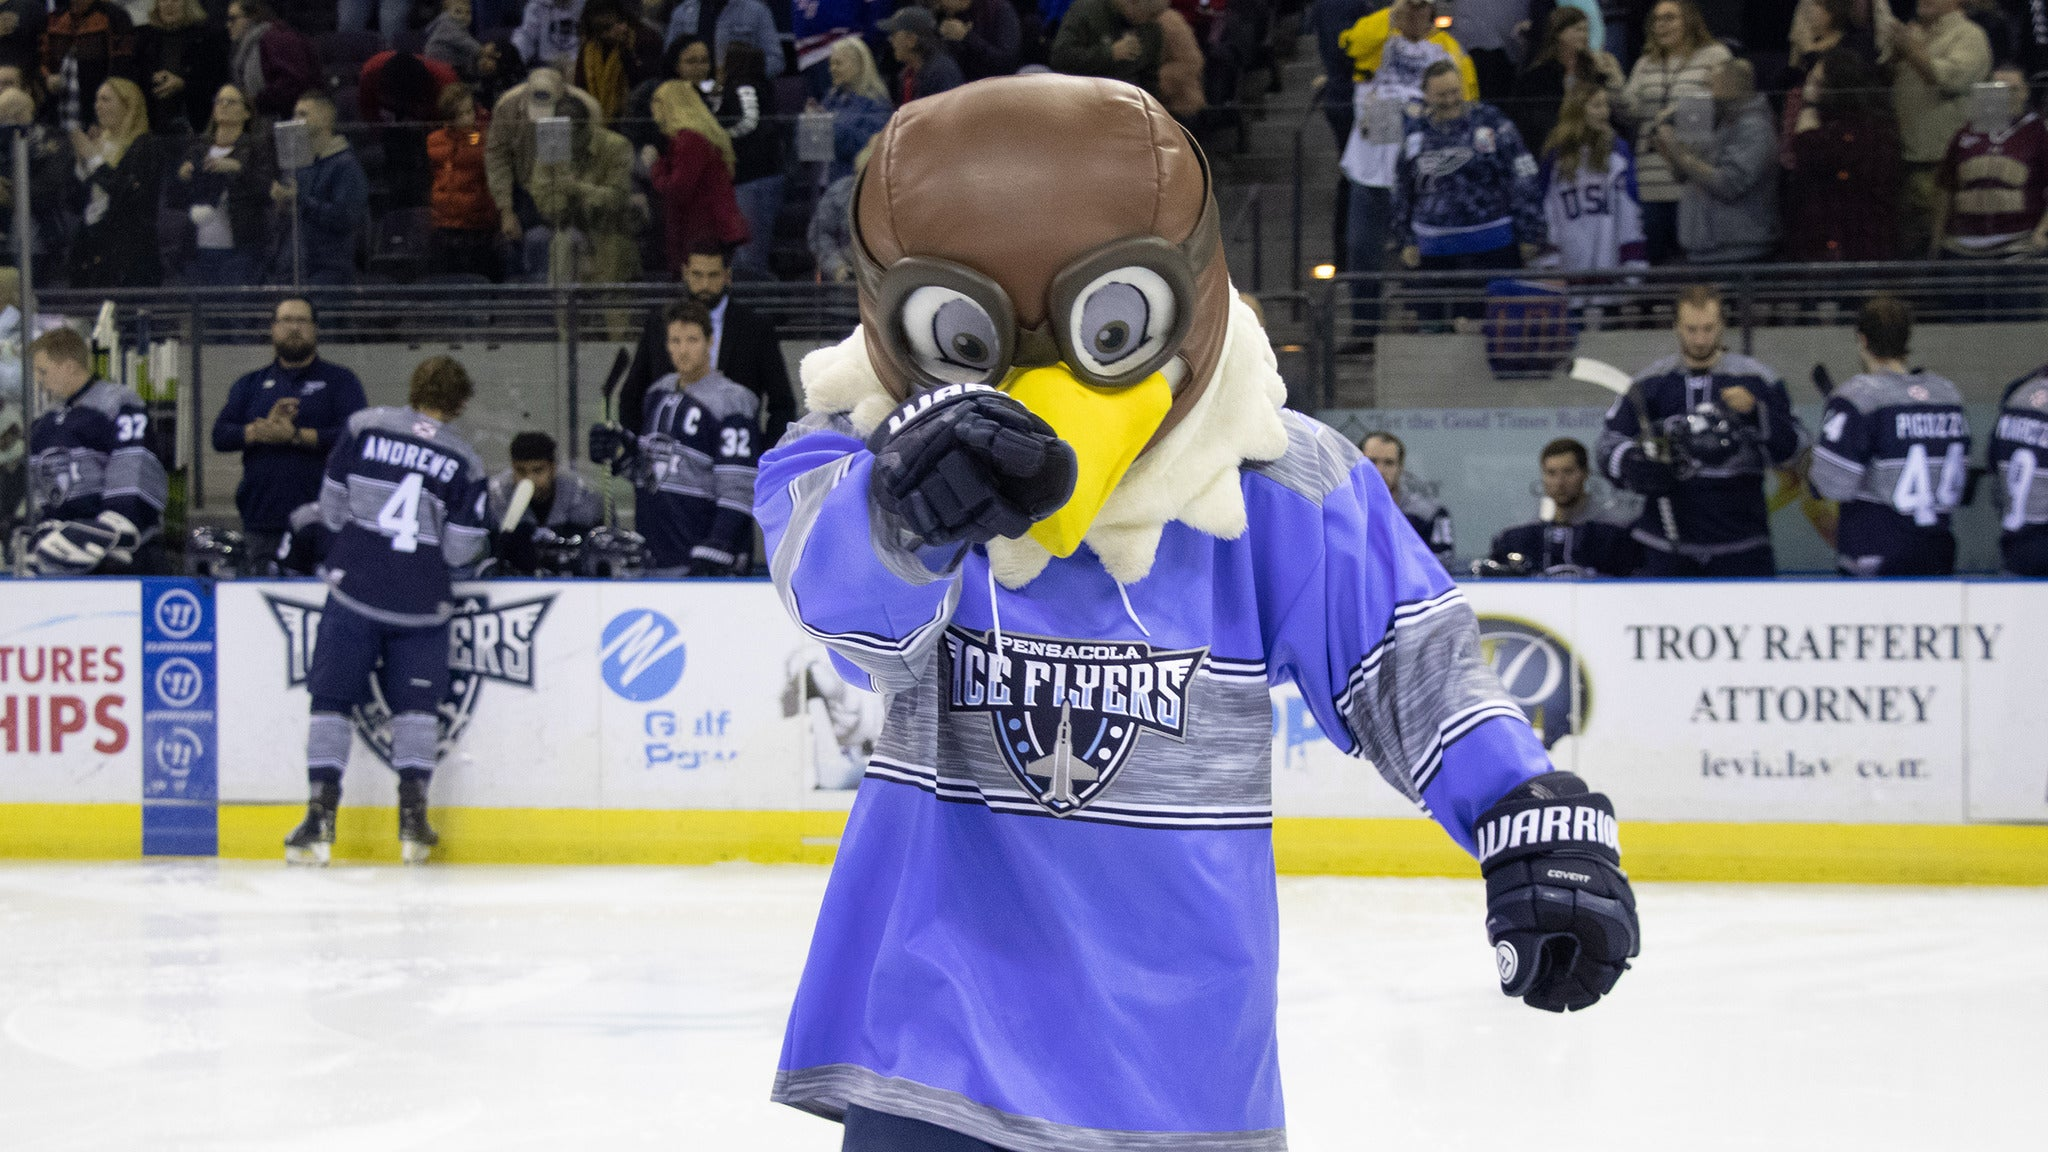 Pensacola Ice Flyers vs. Knoxville Ice Bears